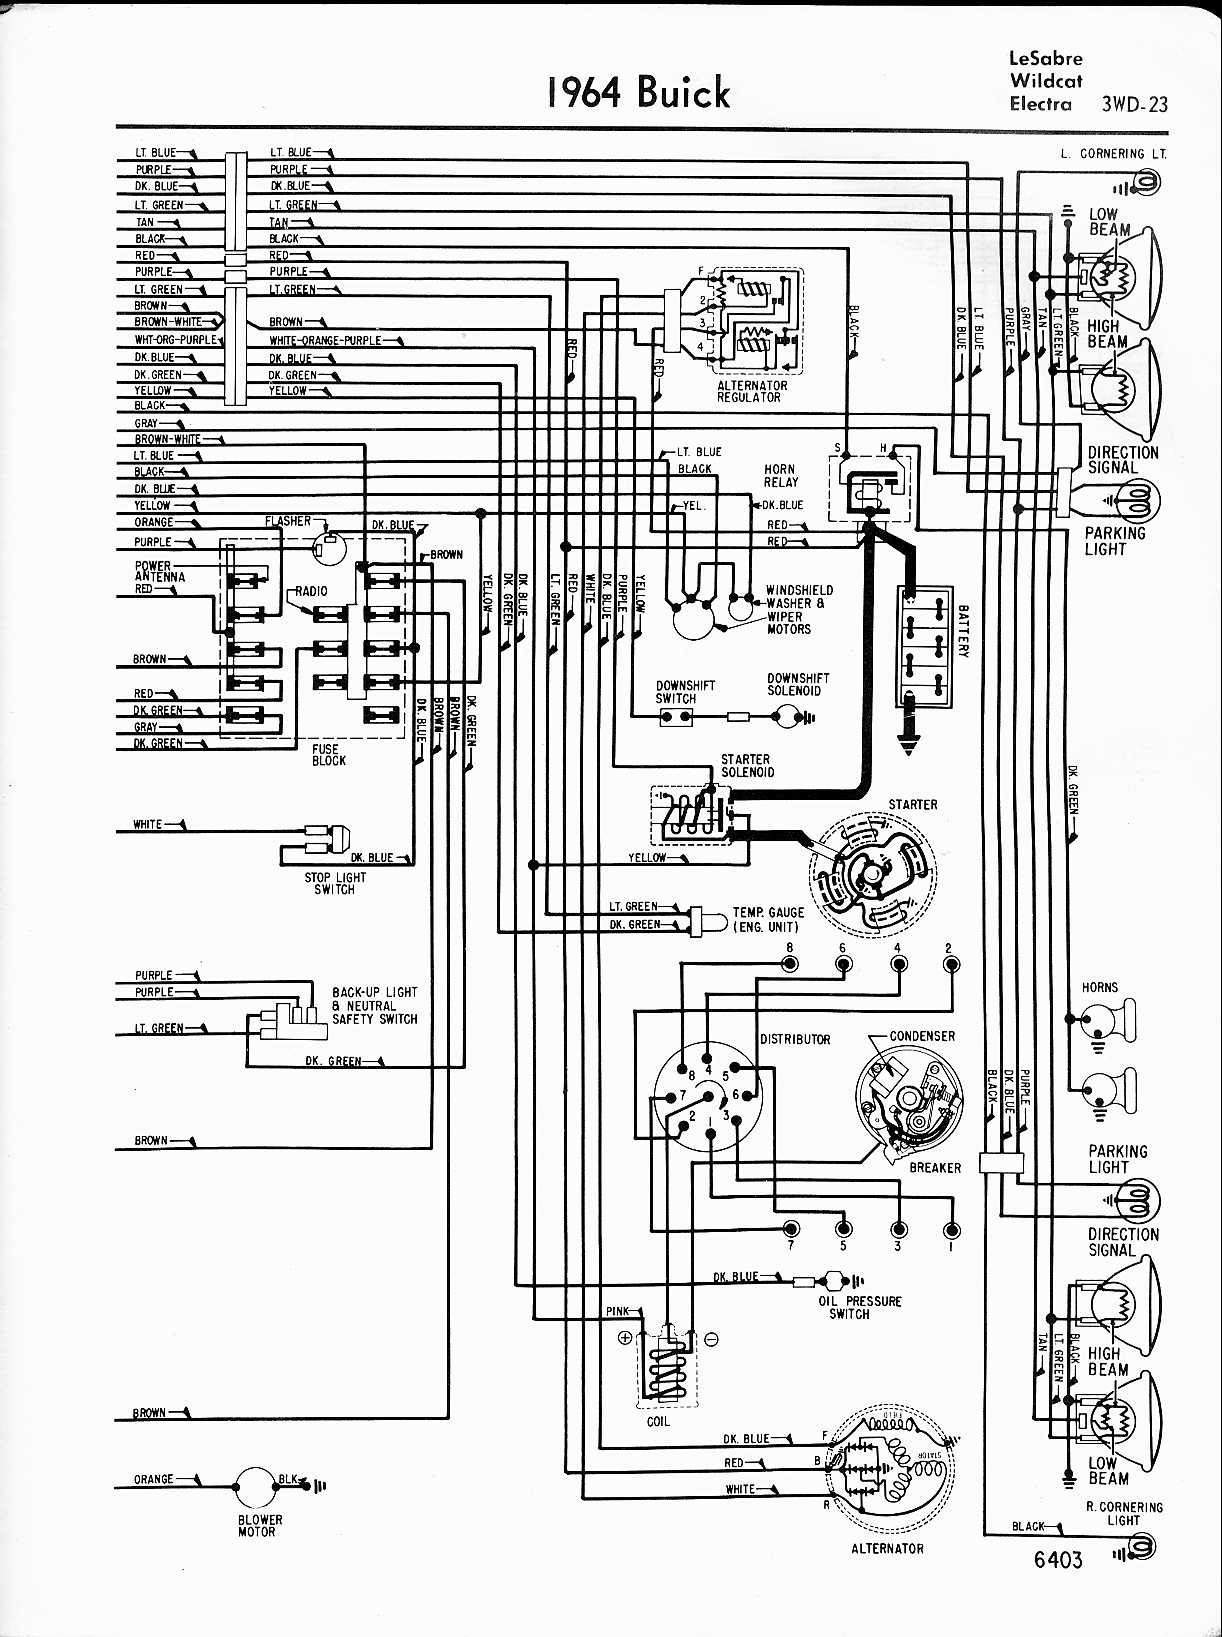 1998 Buick Lesabre Wiring Diagram Free Download Wiring Diagram Workstation Workstation Pasticceriagele It